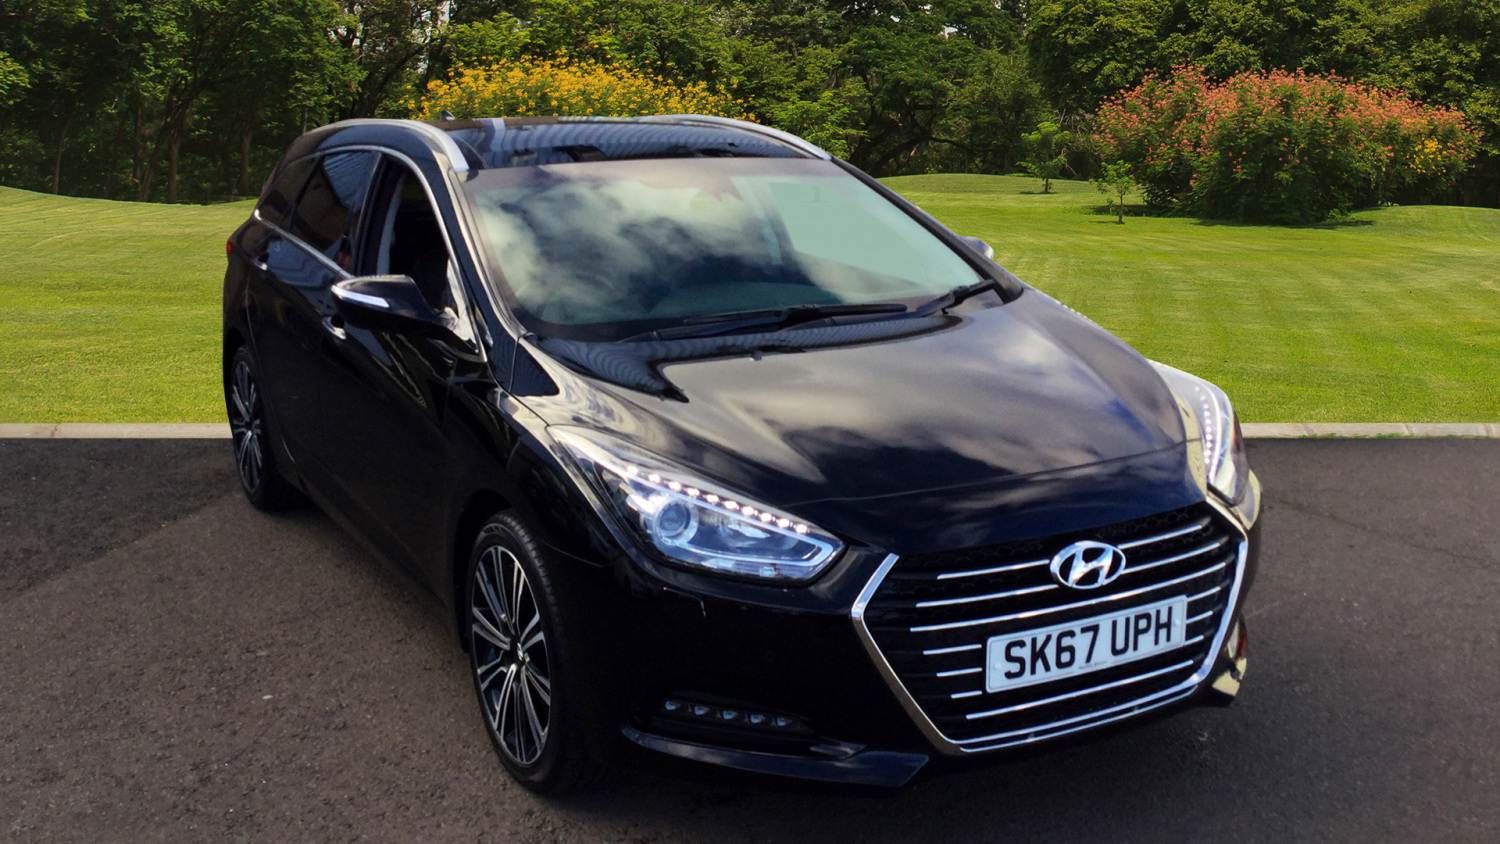 used hyundai i40 1 7 crdi blue drive premium 5dr dct diesel estate for sale in scotland. Black Bedroom Furniture Sets. Home Design Ideas